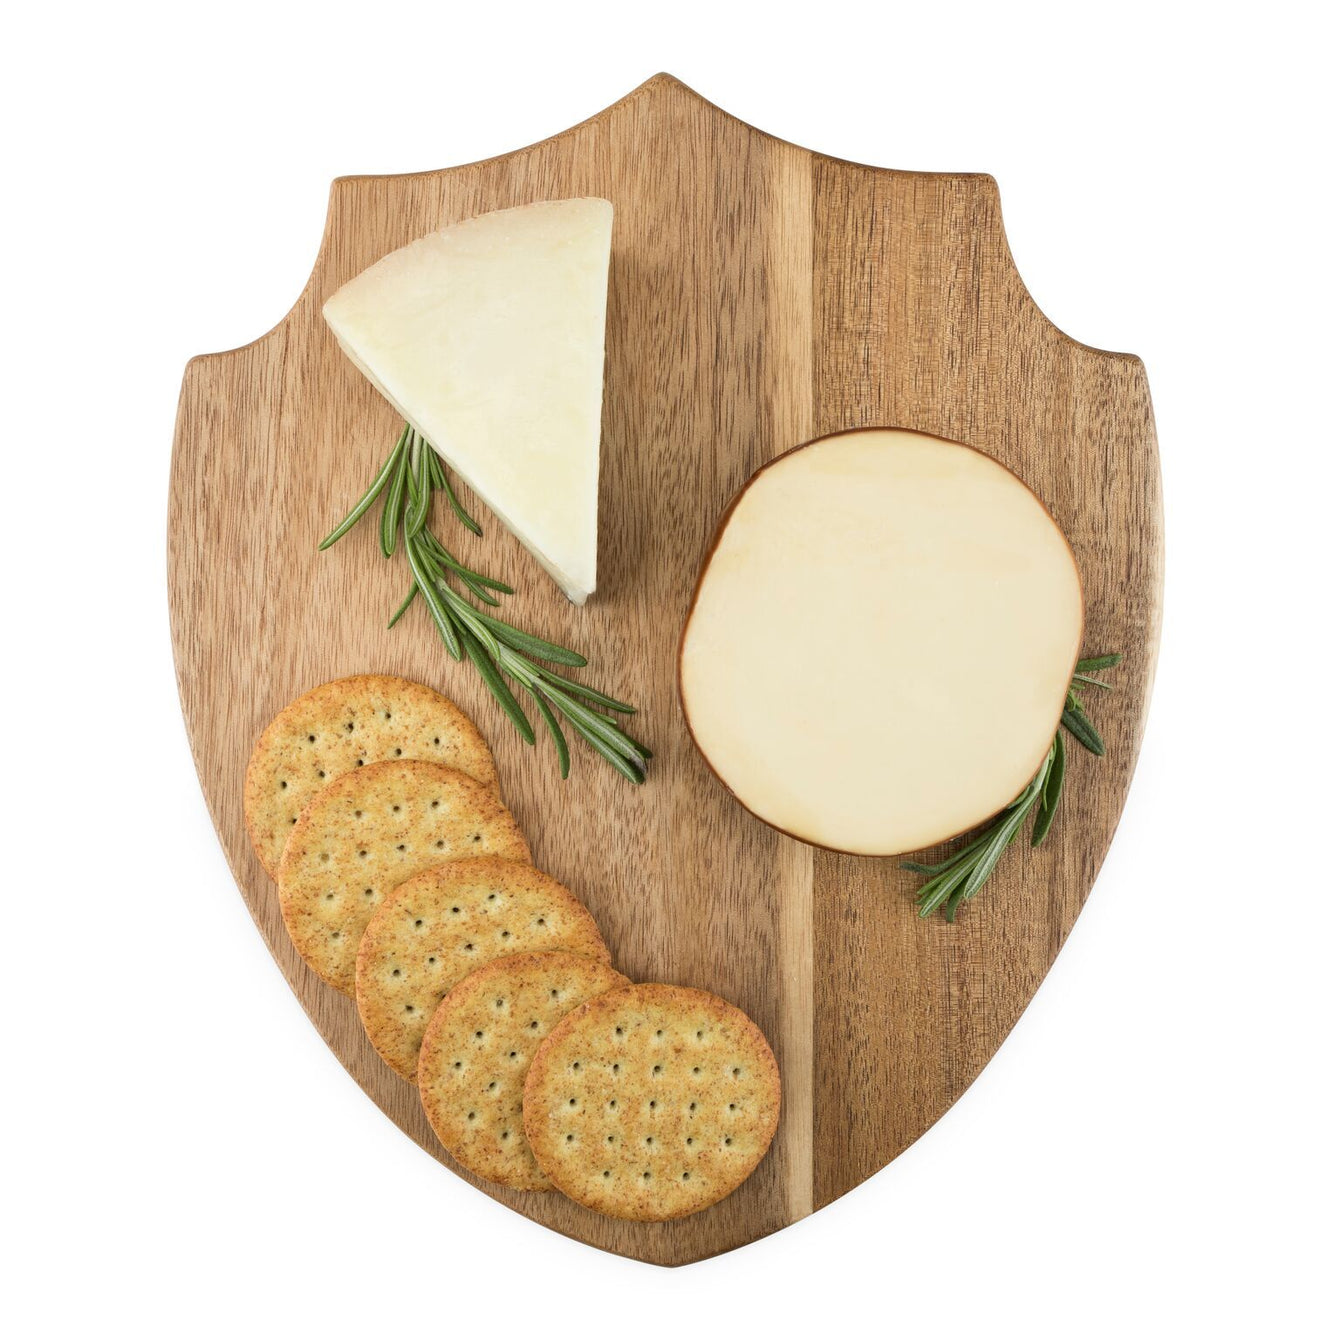 Acacia Wood Shield Cheese Board-Home - Entertaining - Cheese + Appetizer Serving-FOSTER AND RYE-Peccadilly